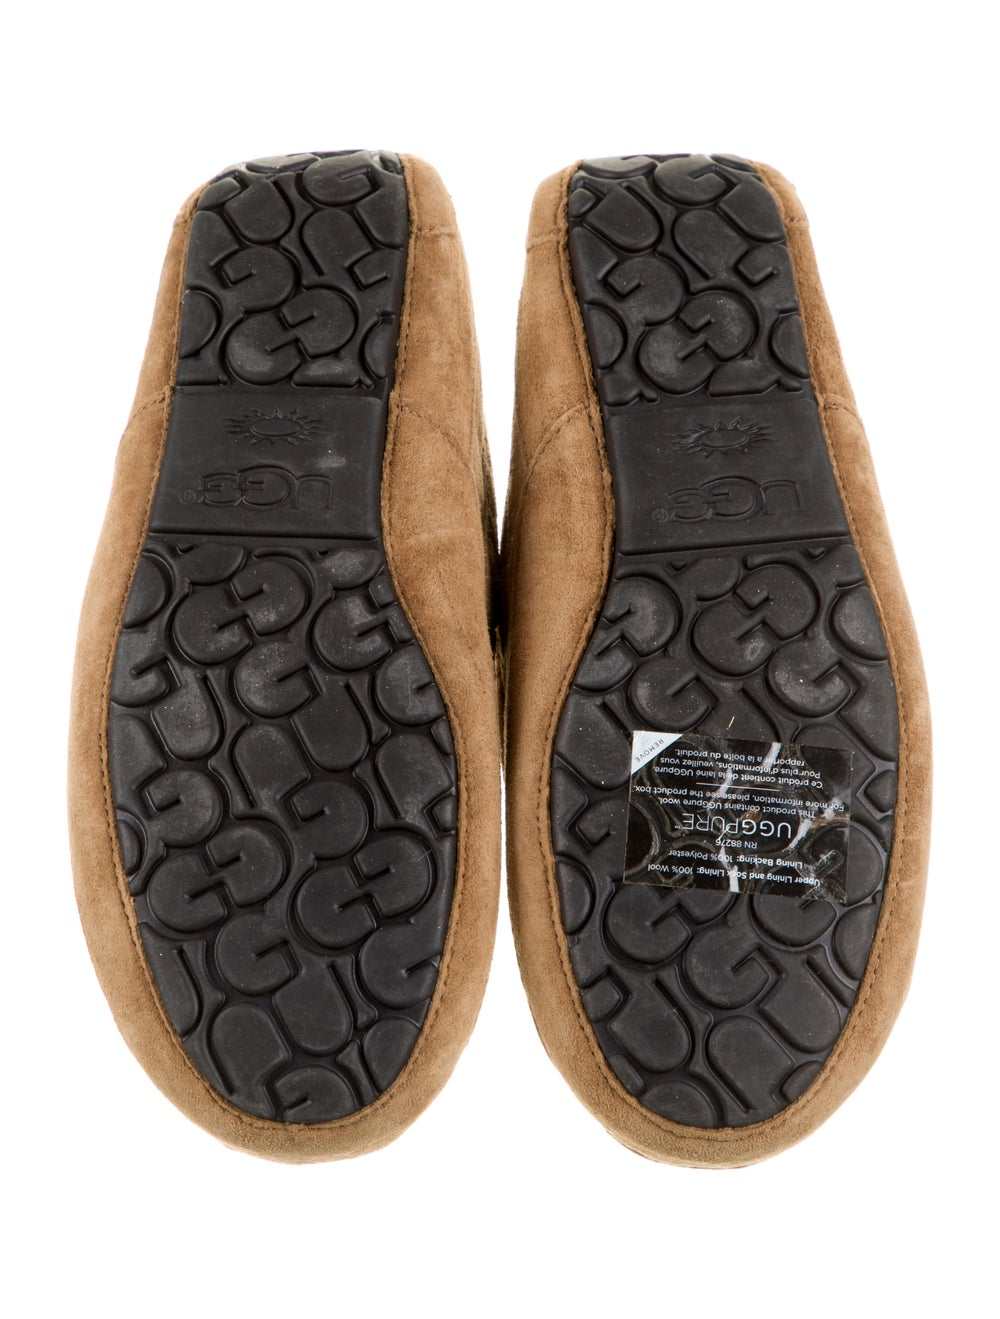 UGG Suede Slippers - image 5